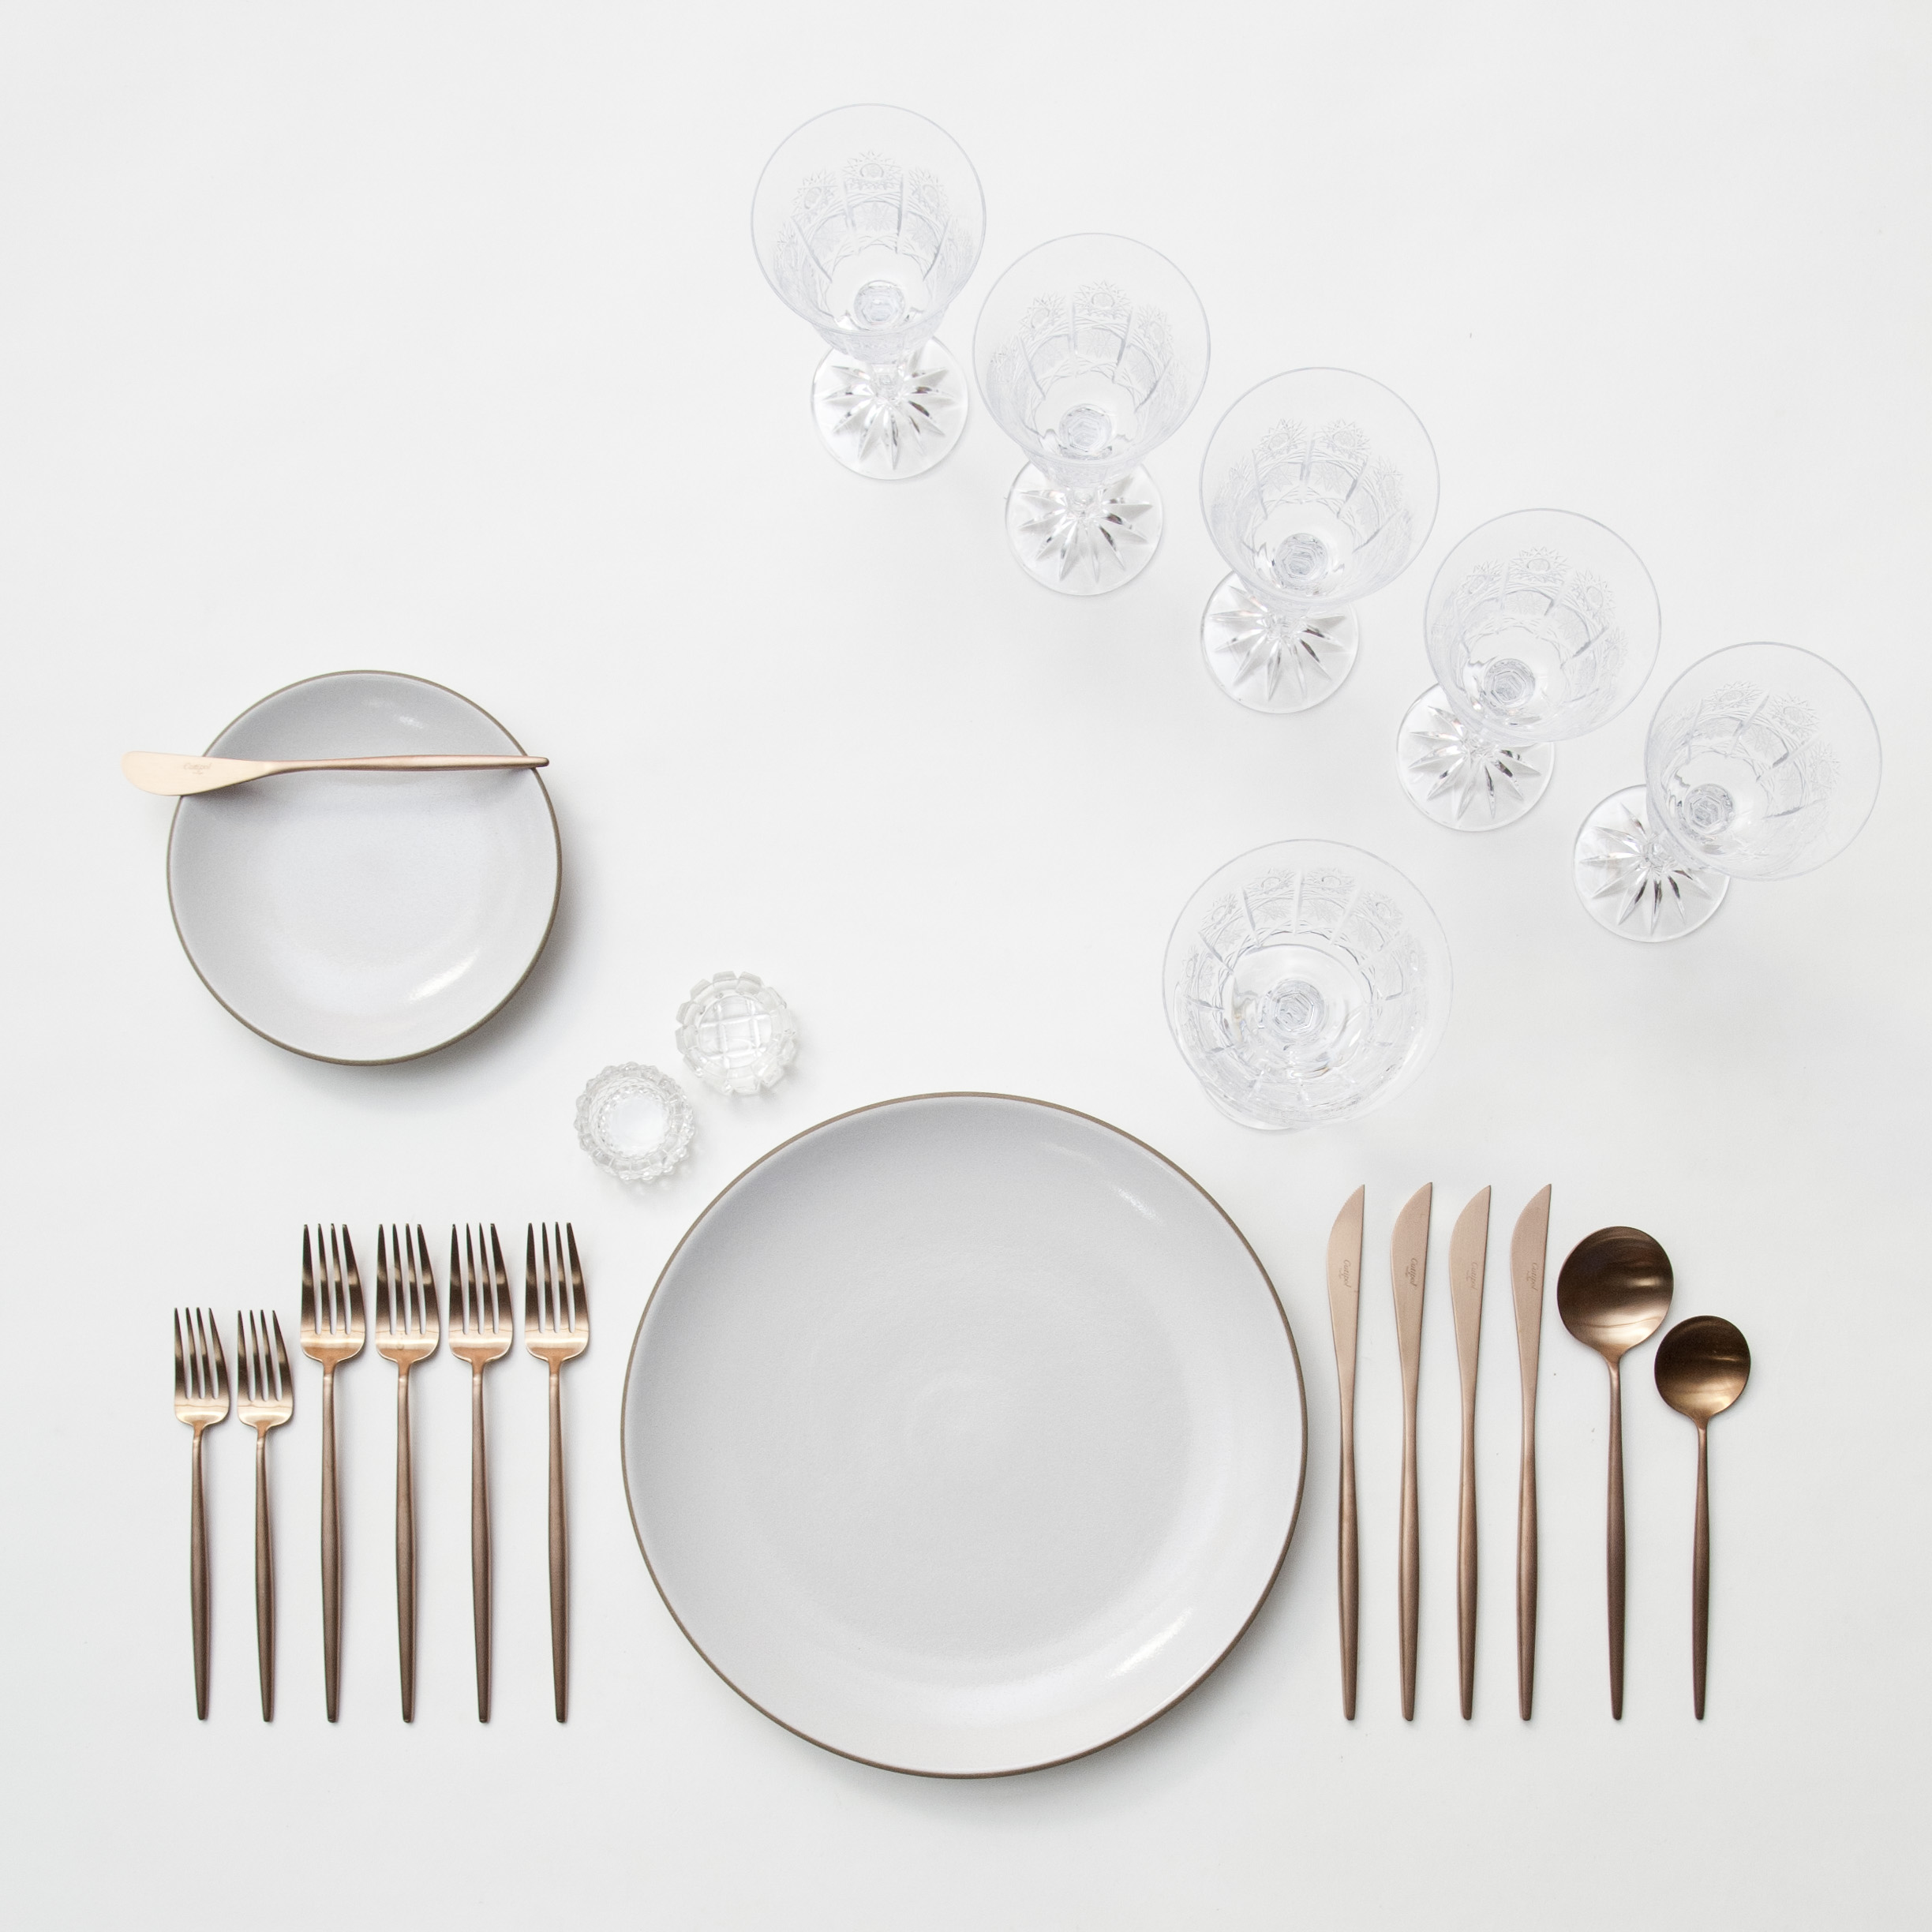 RENT: Heath Ceramics in Opaque White + Moon Flatware in Brushed Rose Gold + Czech Crystal Stemware + Antique Crystal Salt Cellars  SHOP:Moon Flatware in Brushed Rose Gold